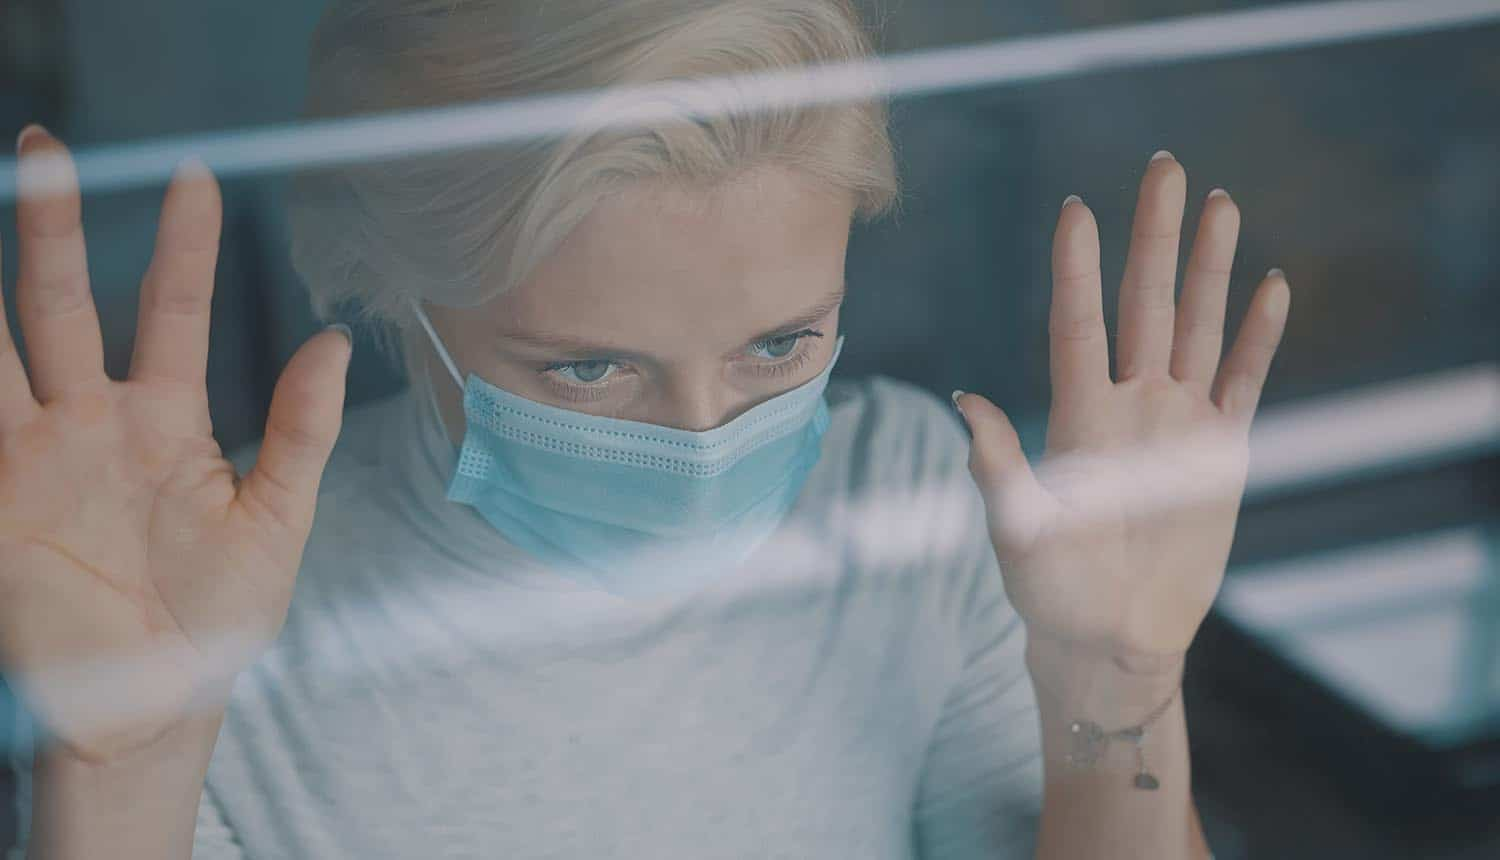 Young anxious woman with face mask showing concern over federal database for COVID-19 vaccine